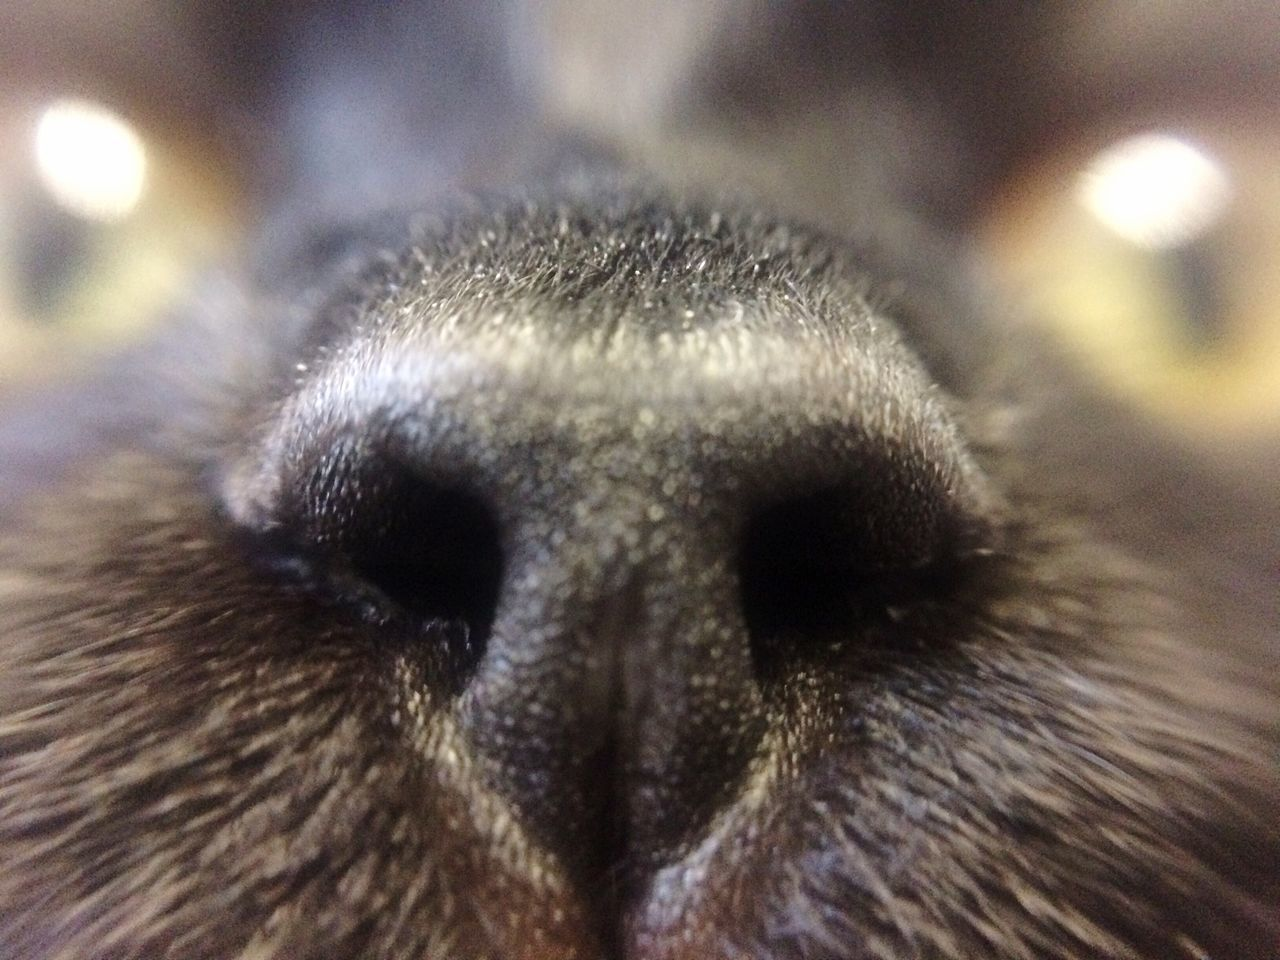 One Animal Macro Animal Themes Close-up Animal Body Part Domestic Animals Pets Animal Eye Animal Nose No People Day Eyeball Cat Fur Glasgow  Scotland Lens